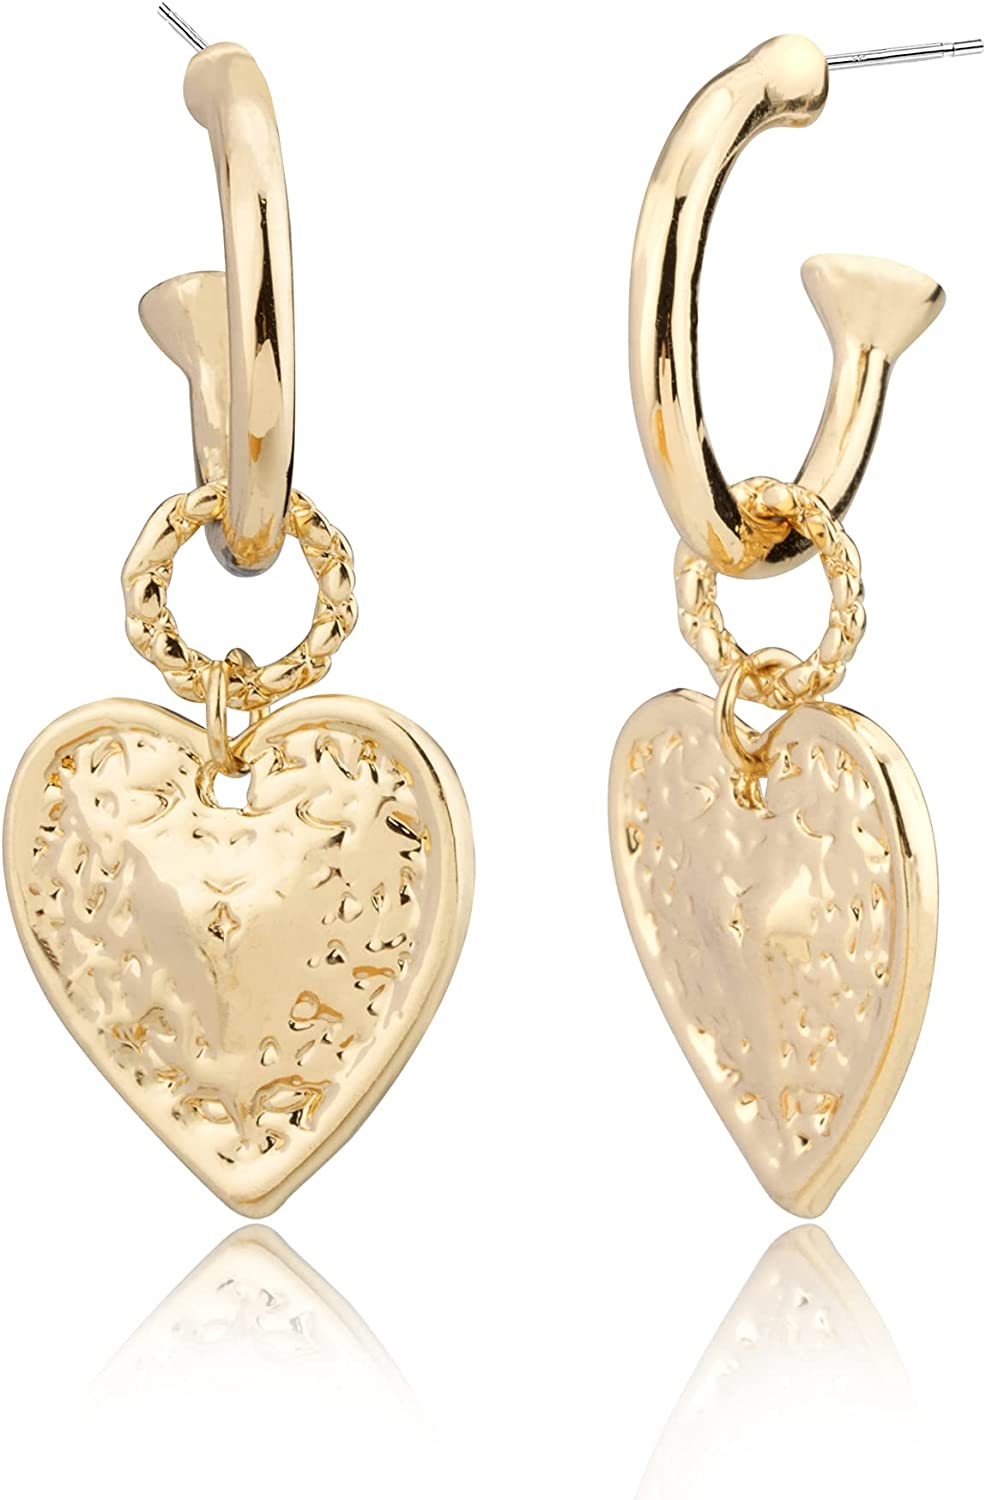 Bcrown 14K Gold Plated Heart Drop for Women S Sterling Bombing free Minneapolis Mall shipping Earrings